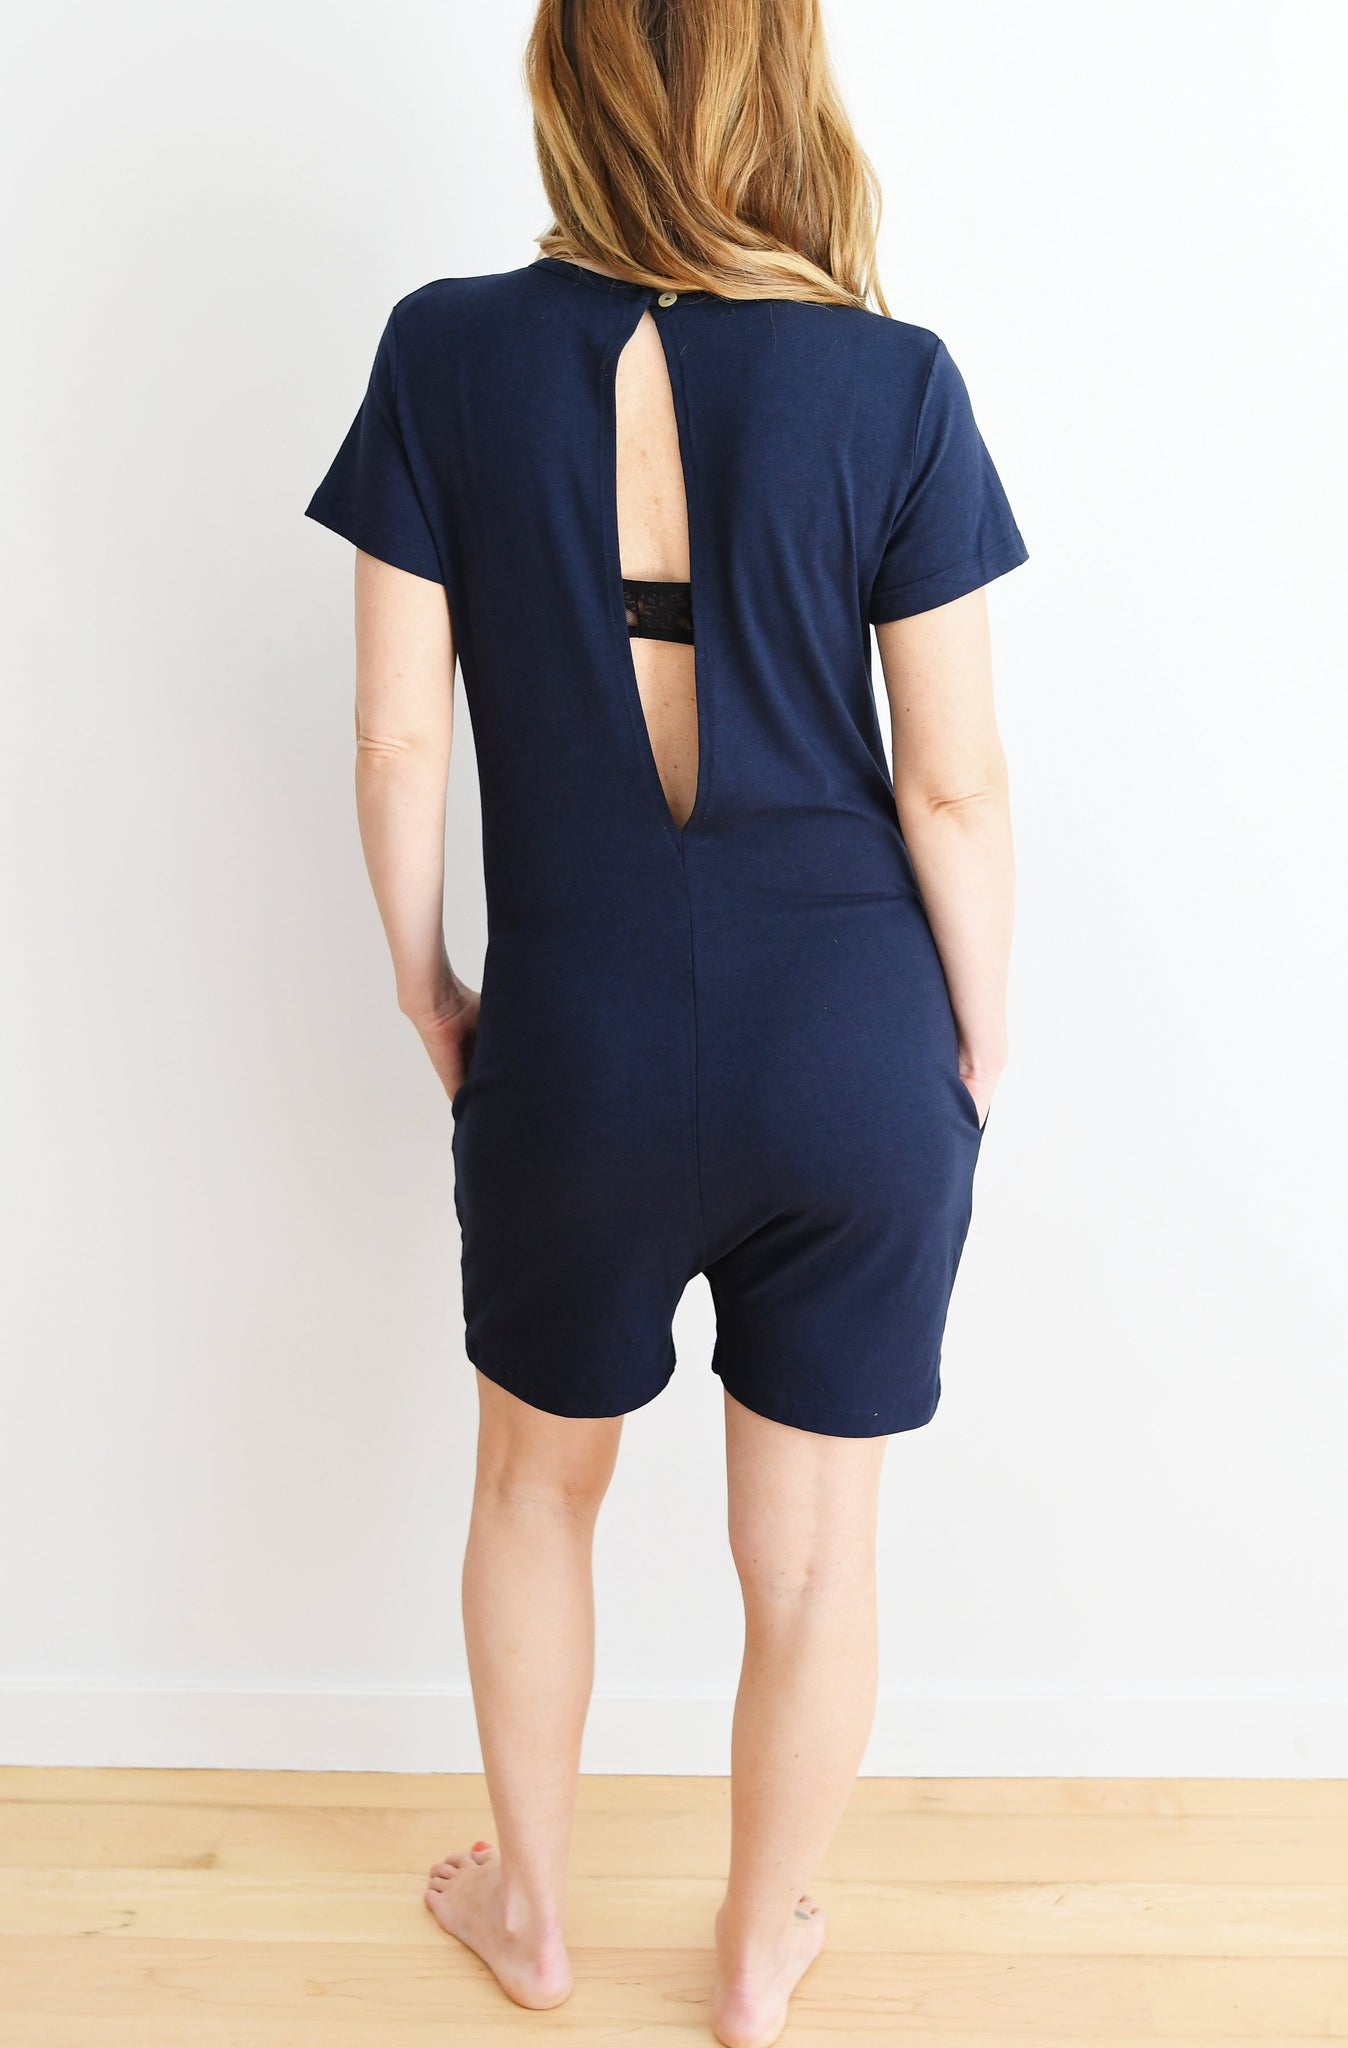 THE GETAWAY ROMPER IN NATURALLY NAVY